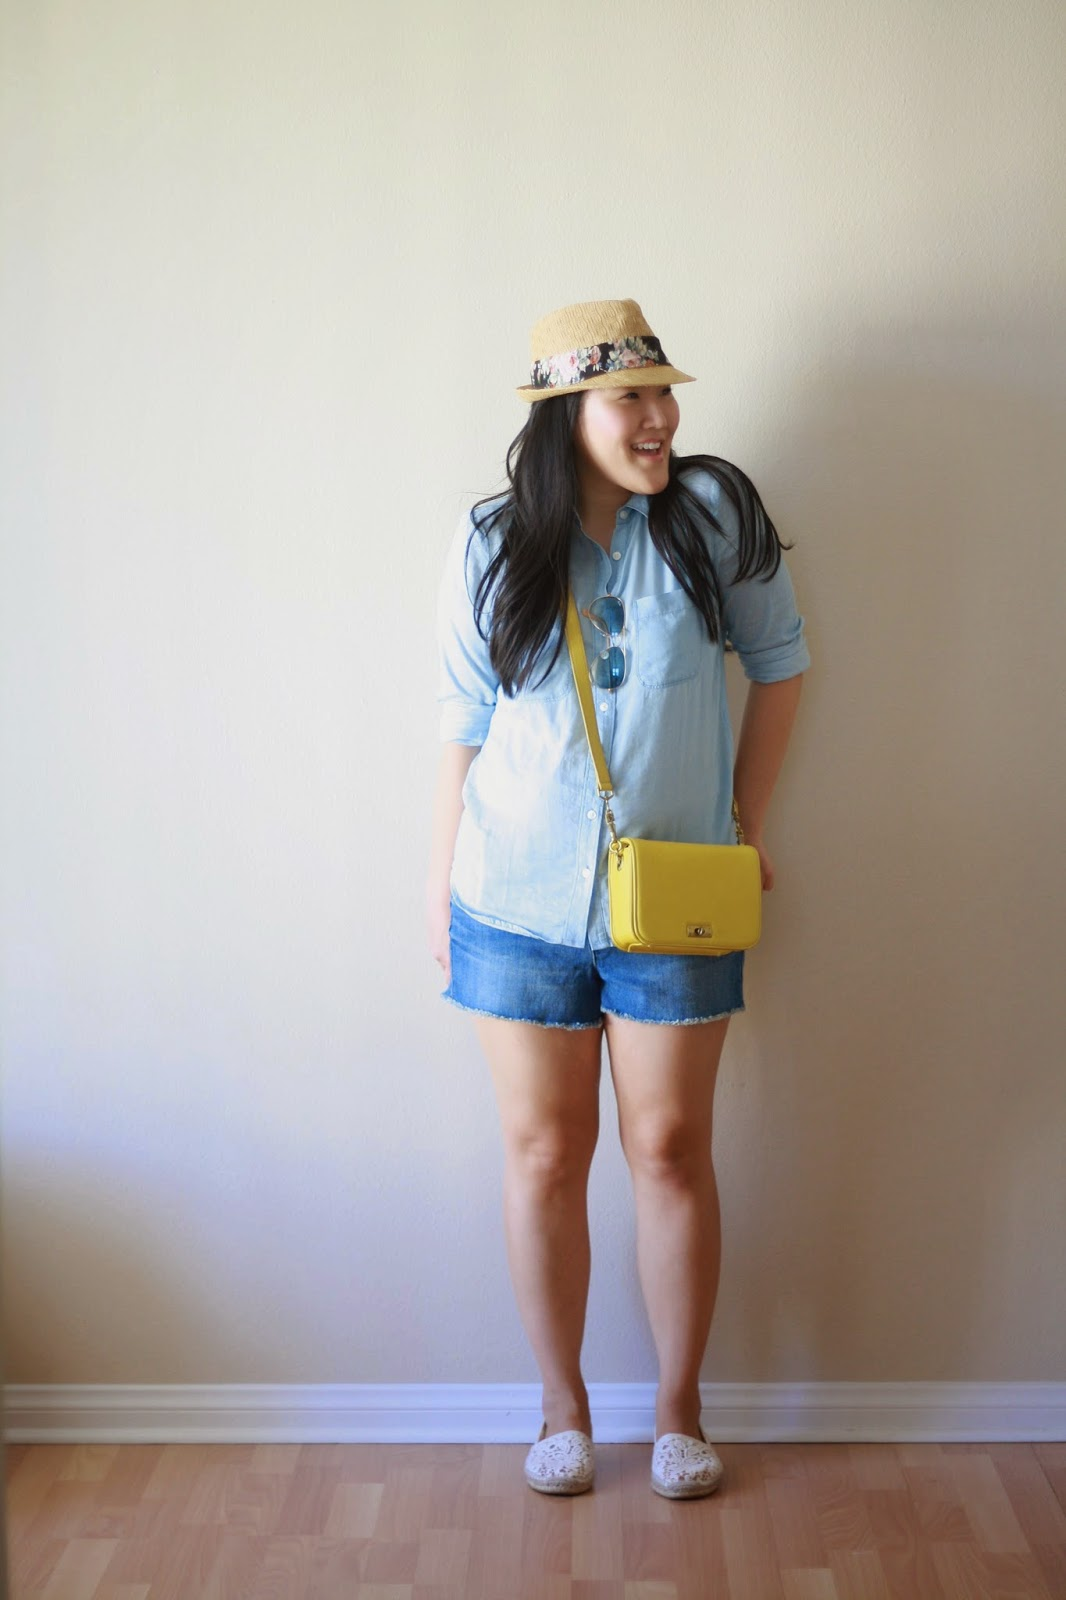 loft, jcrew, tory burch, abbe espadrilles, style blogger, fashion blogger, simplyxclassic, tripes, preppy, chic, chambray